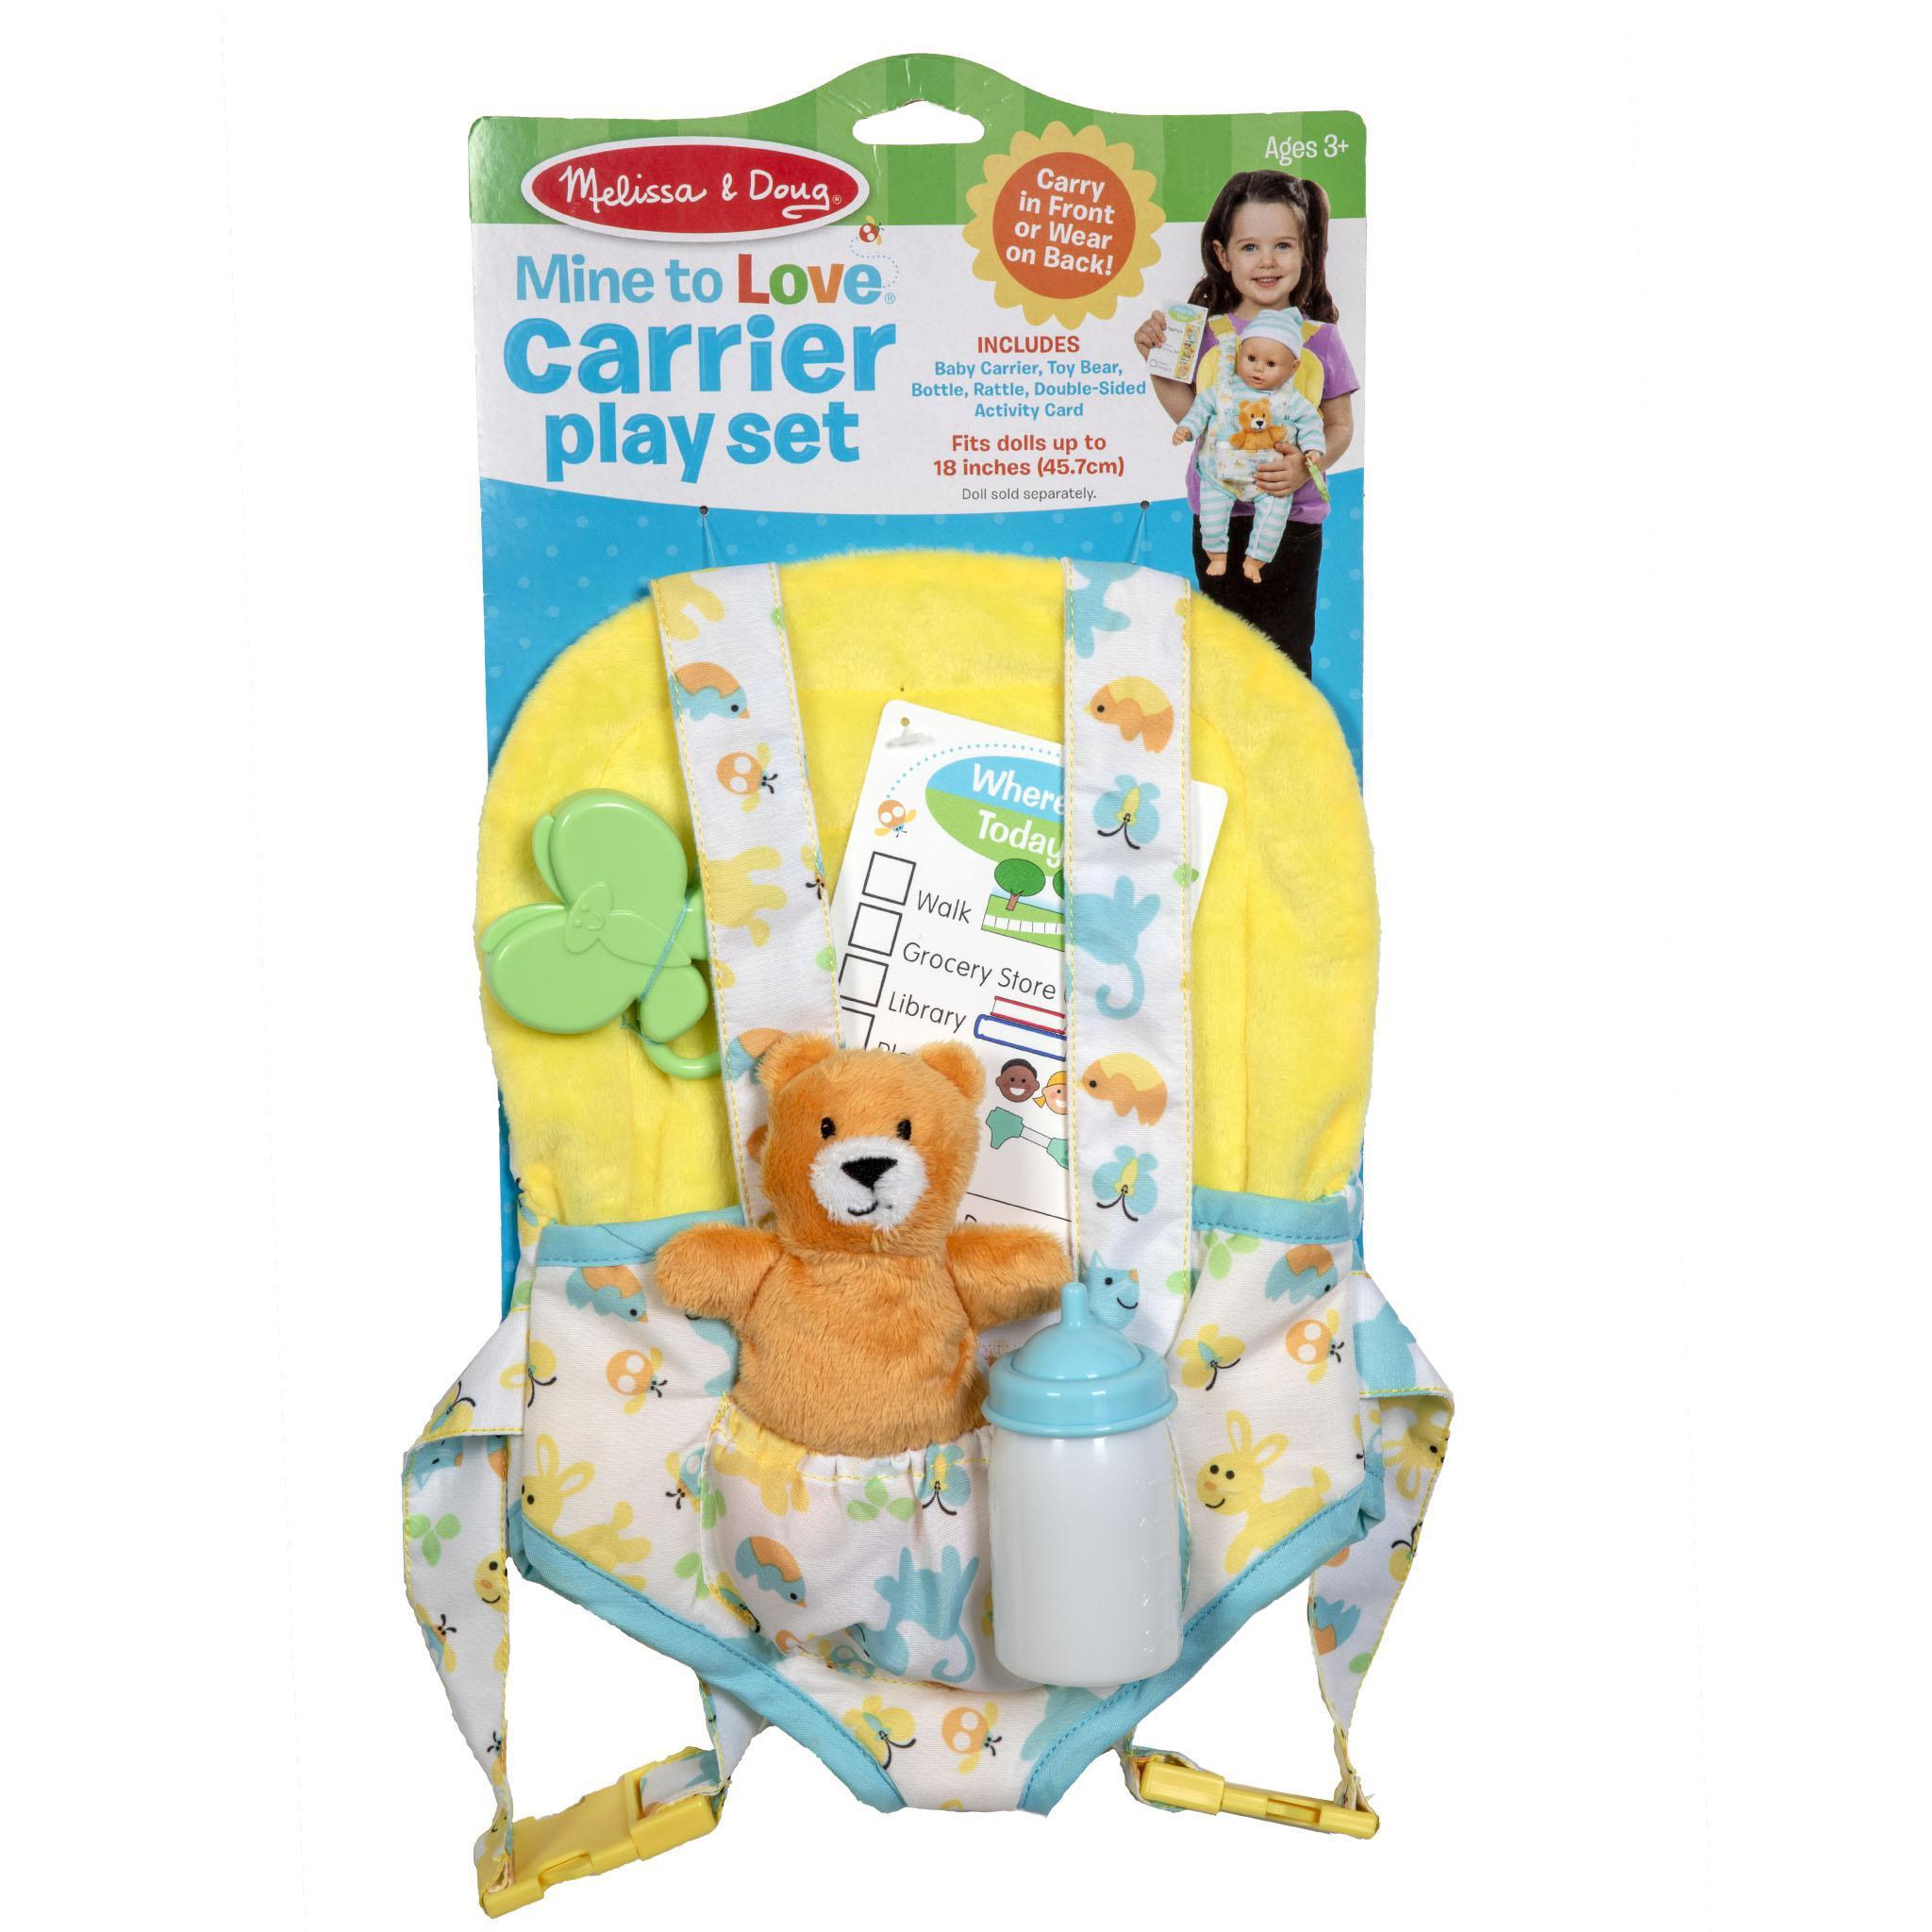 Mine to Love Carrier Playset